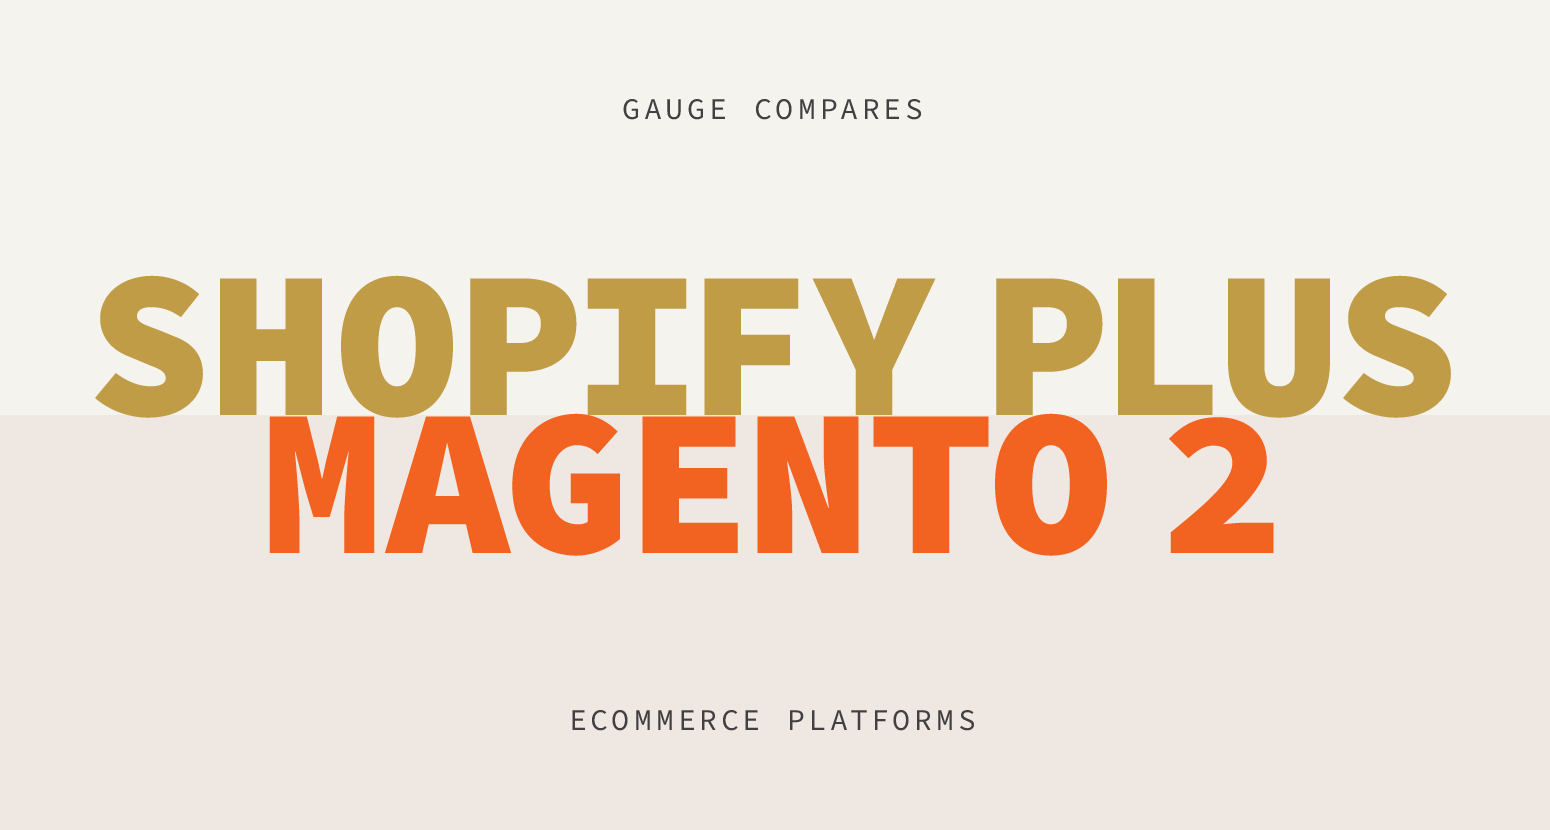 The Differences between Magento 2 and Shopify Plus